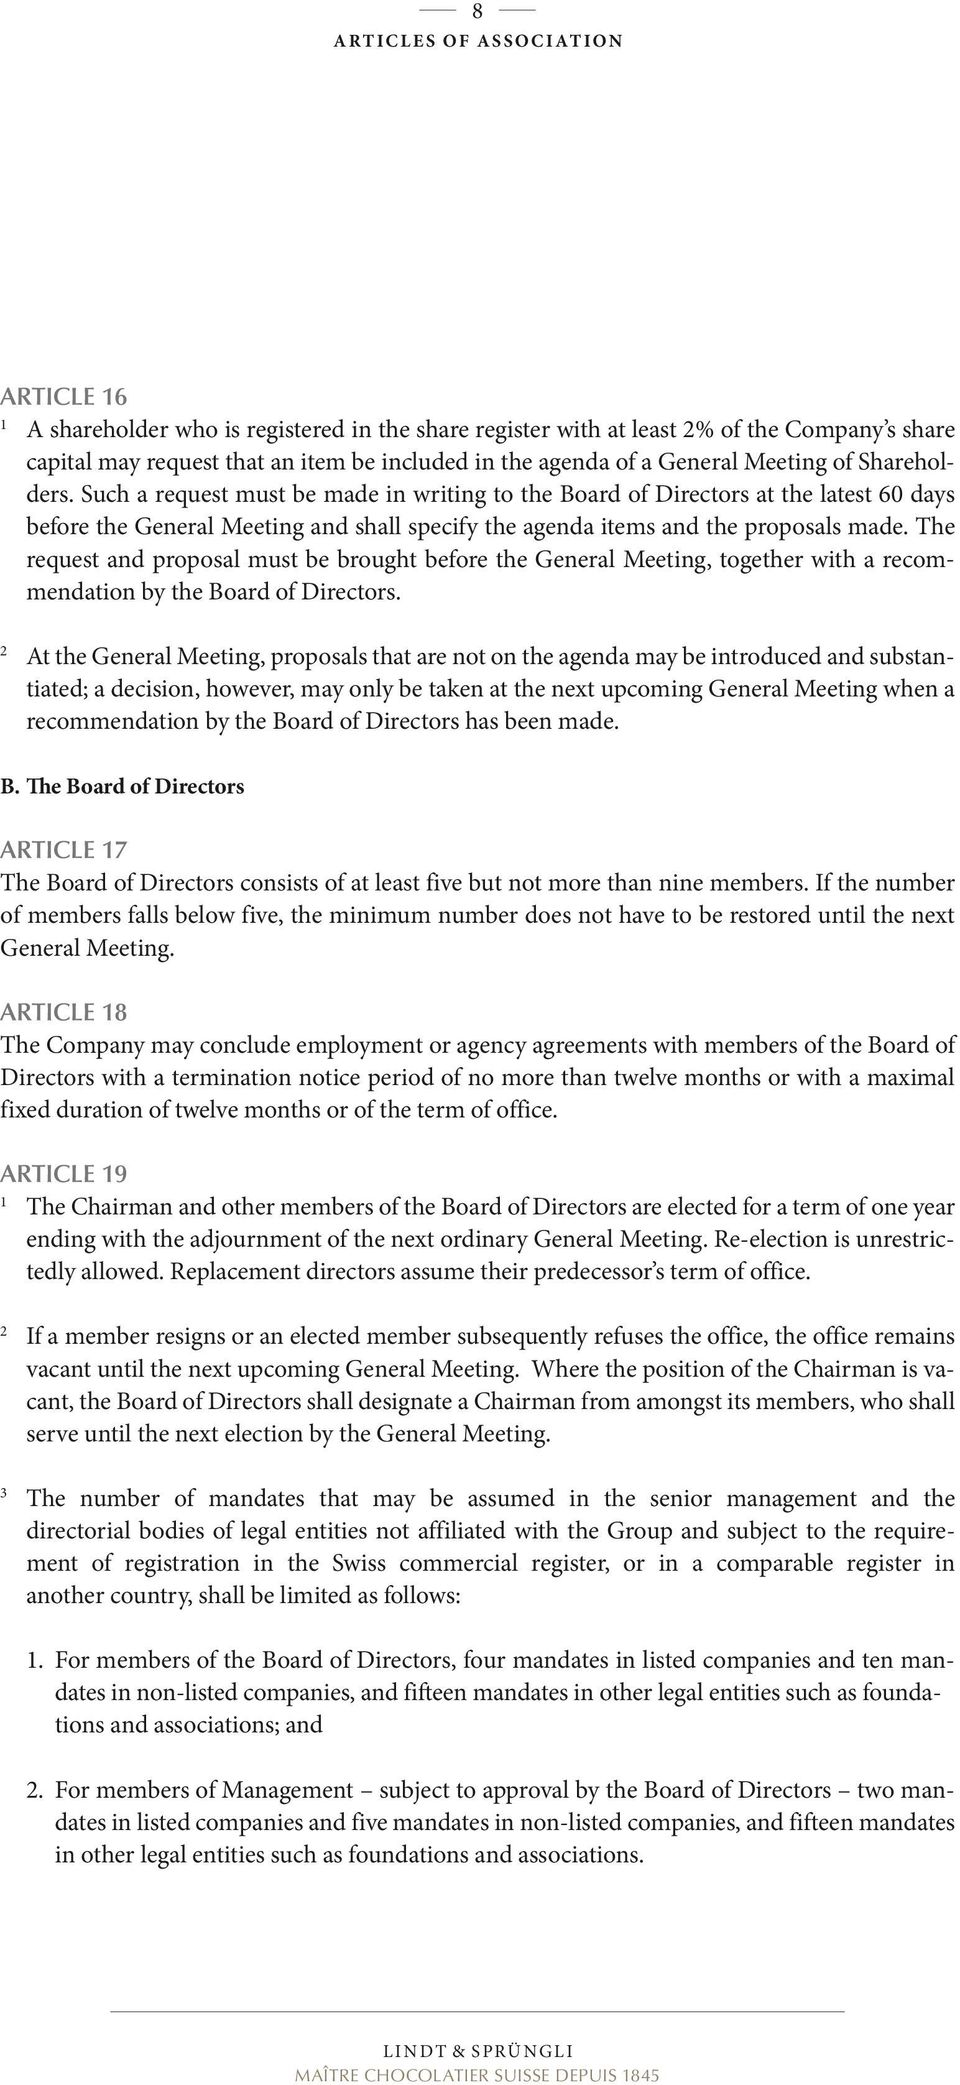 The request and proposal must be brought before the General Meeting, together with a recommendation by the Board of Directors.